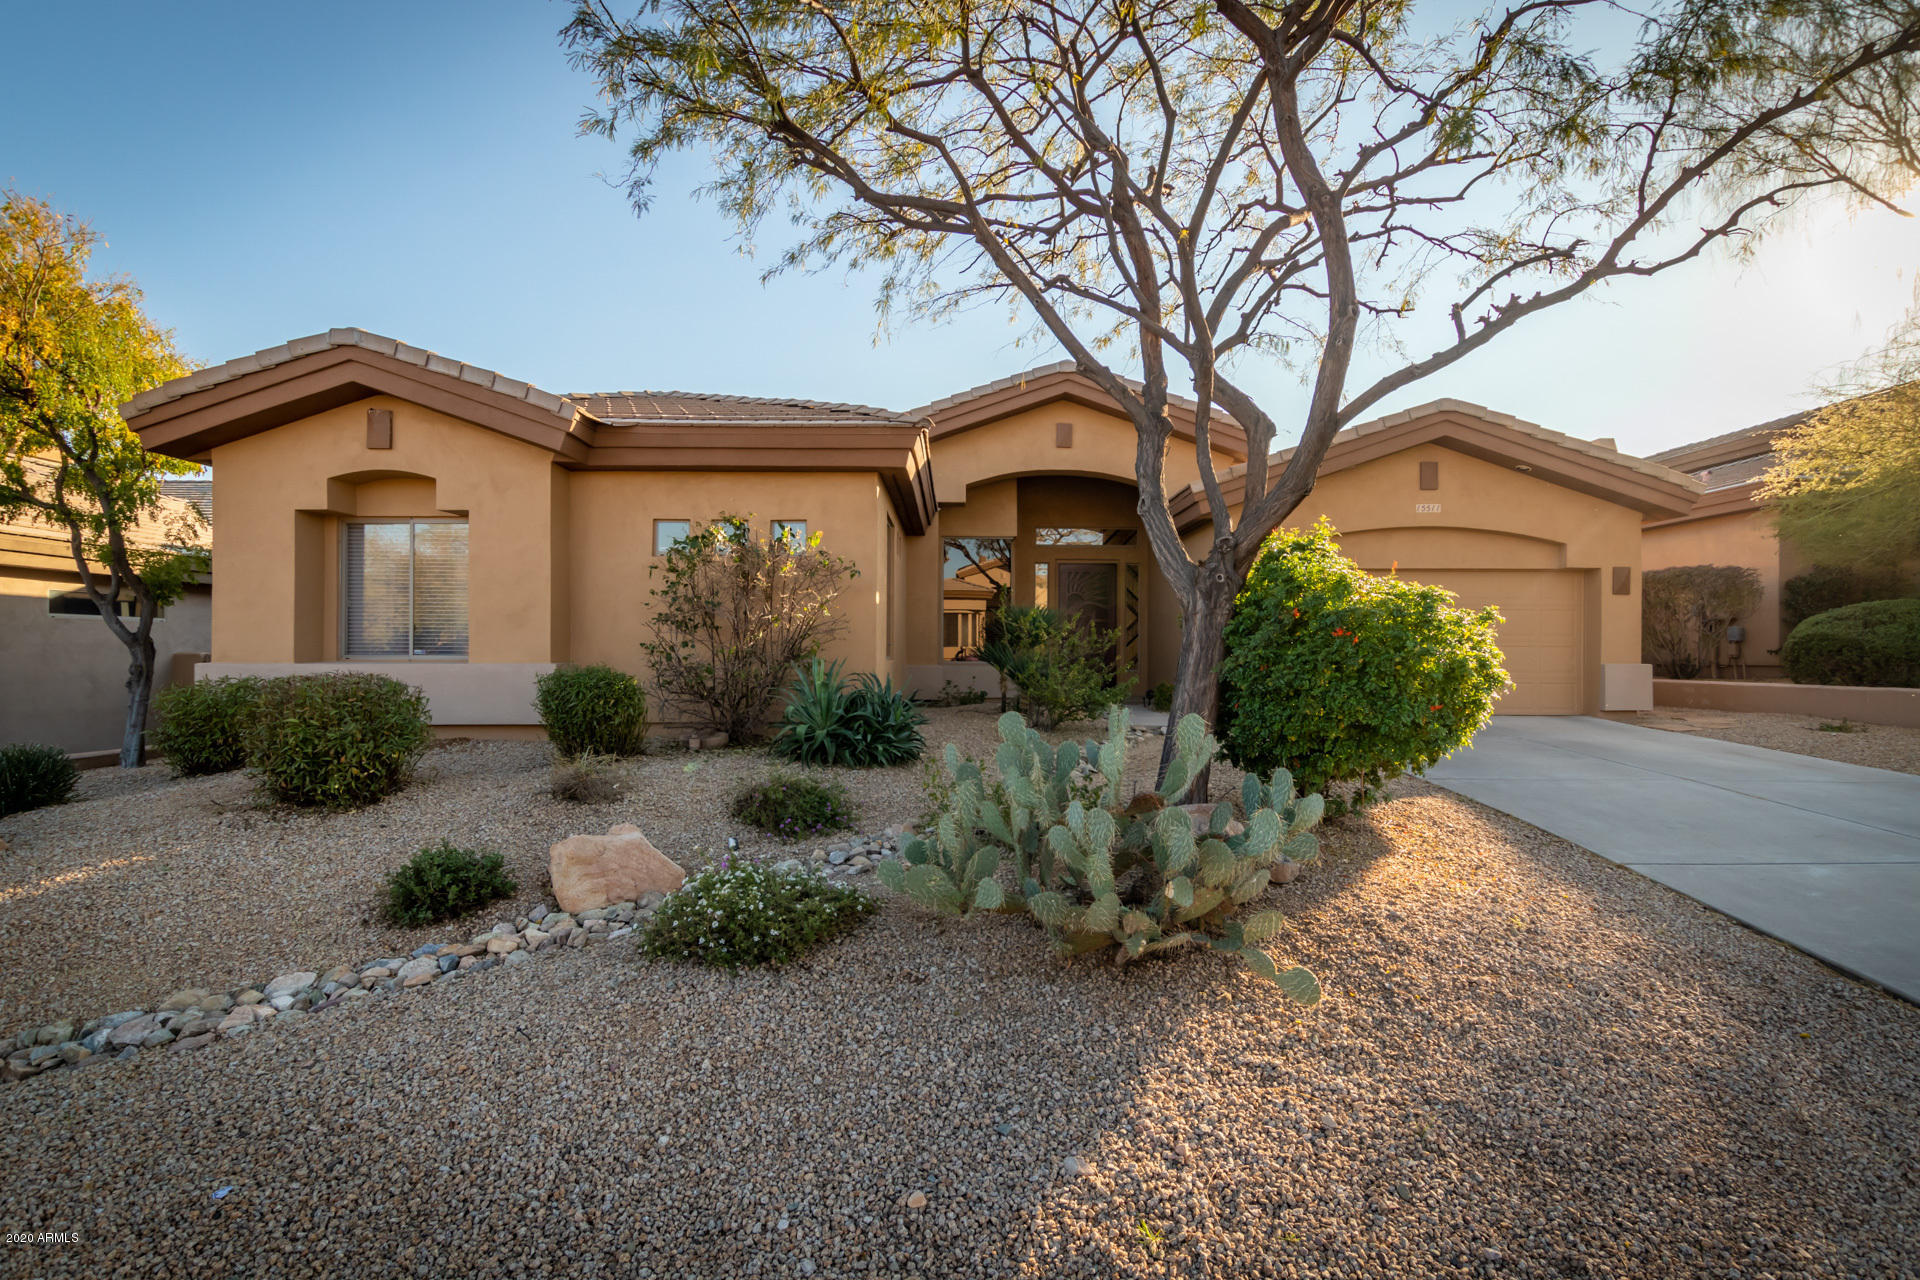 Photo of 15511 E CHAPARRAL Way, Fountain Hills, AZ 85268